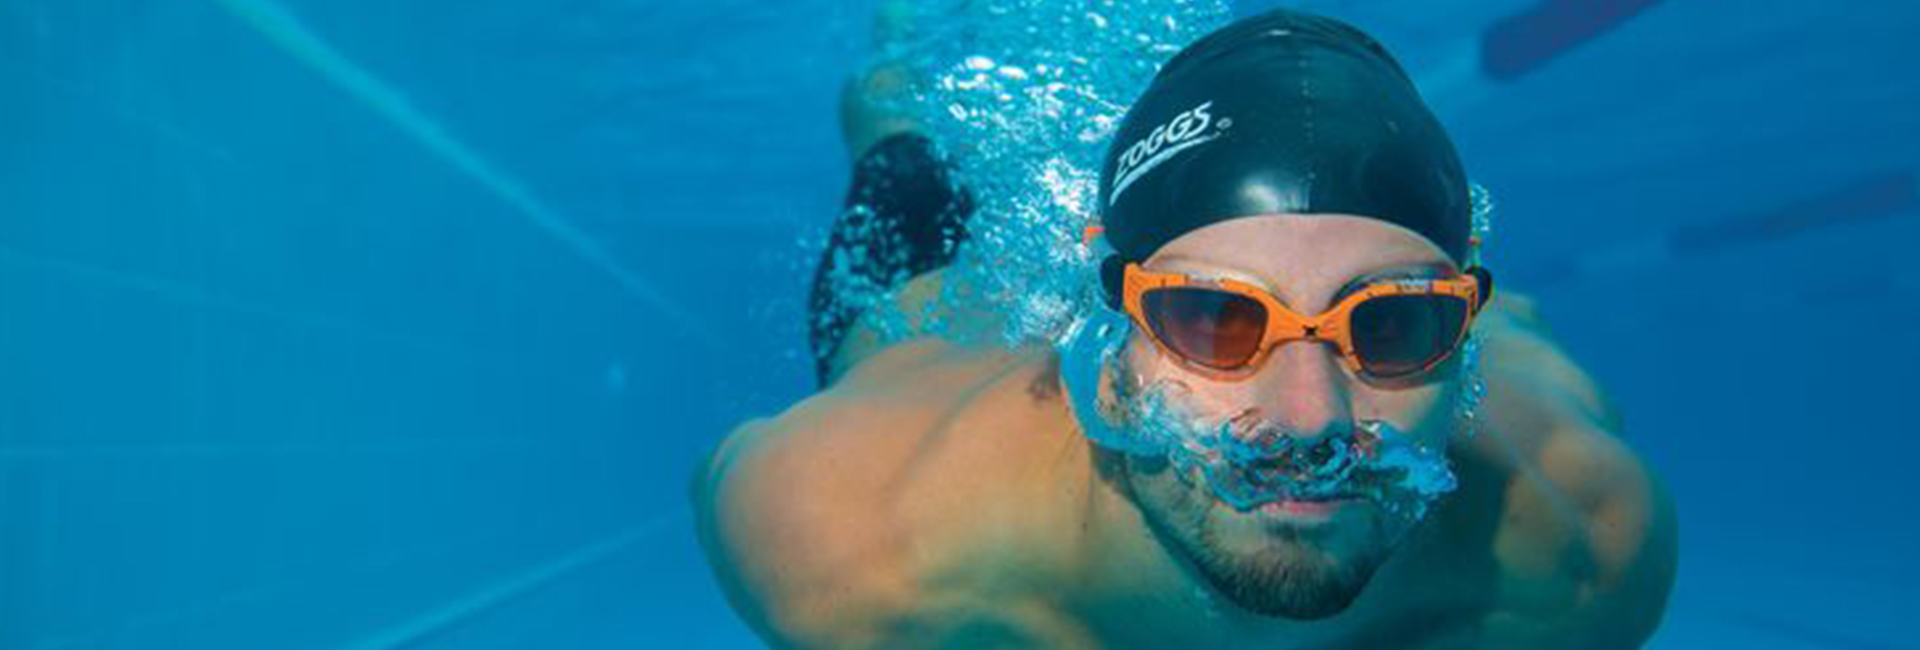 Athlete swimming underwater in the pool